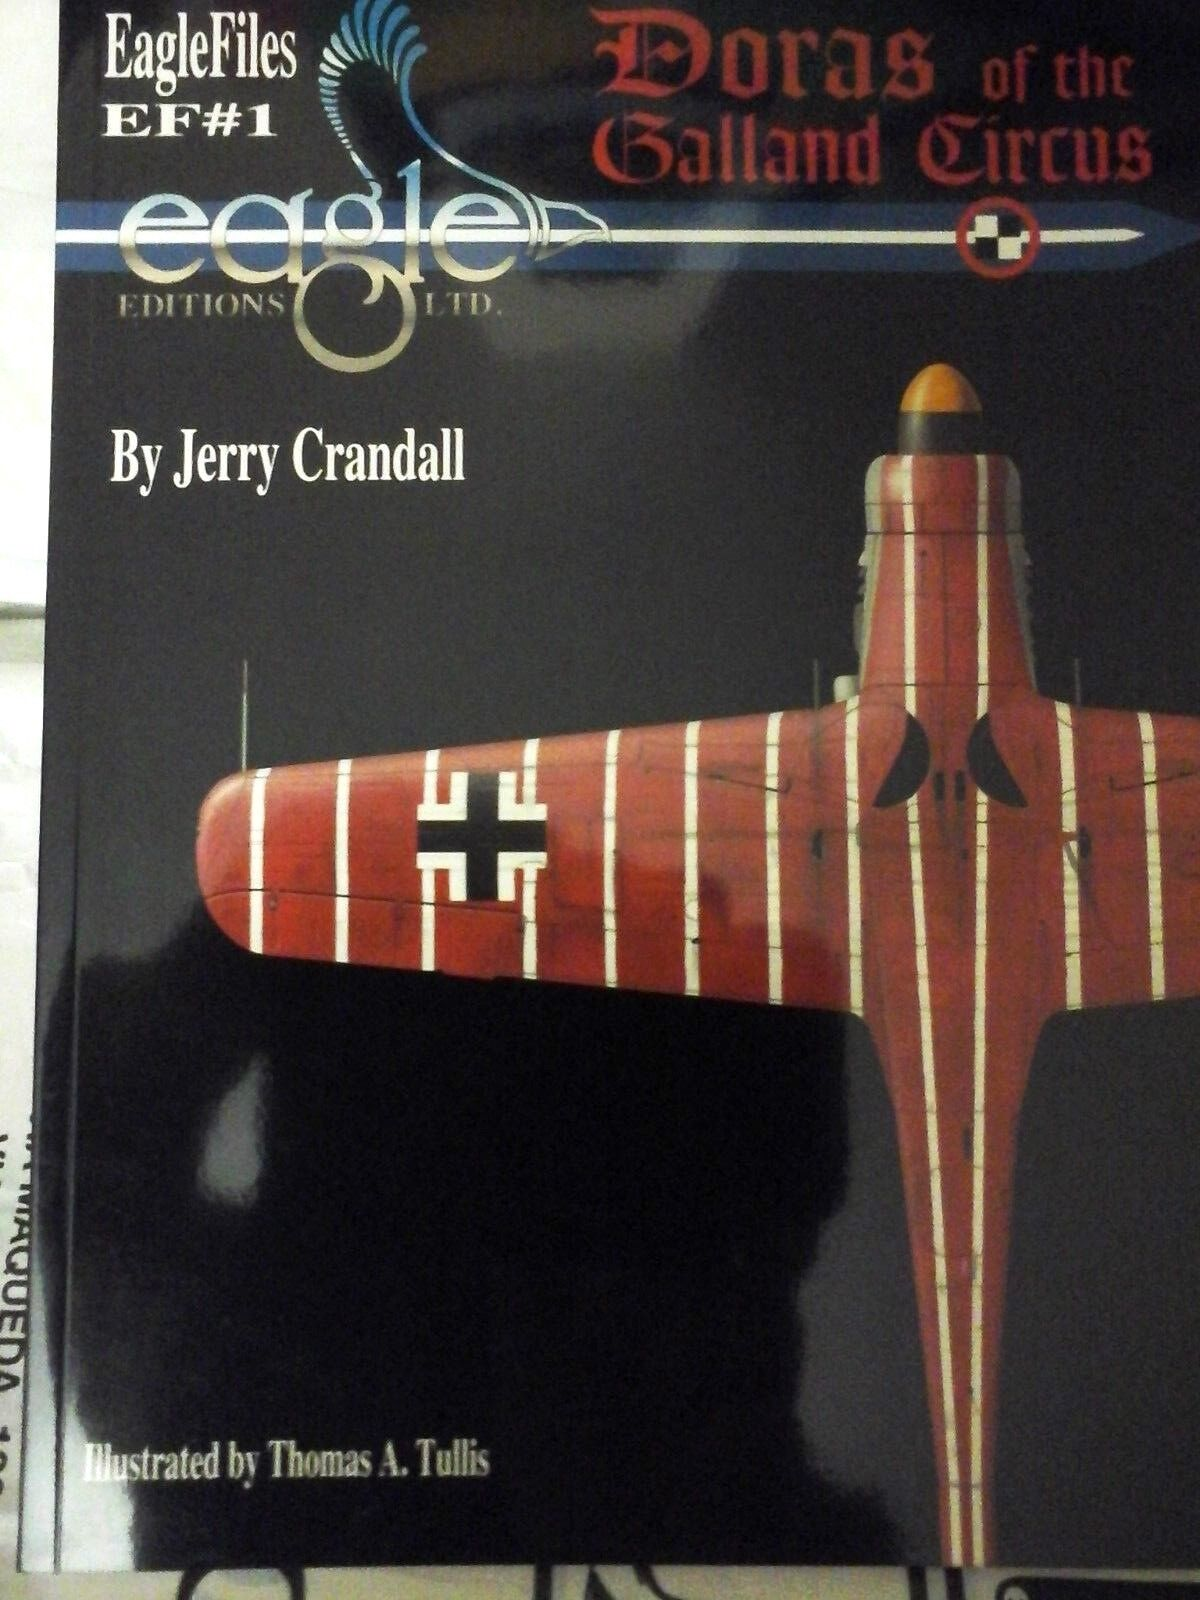 EAGLE FILES N.1 DORAS OF THE GALLAND CIRCUS-BY JERRY CRANDALL EAGLE EDITIONS LTD